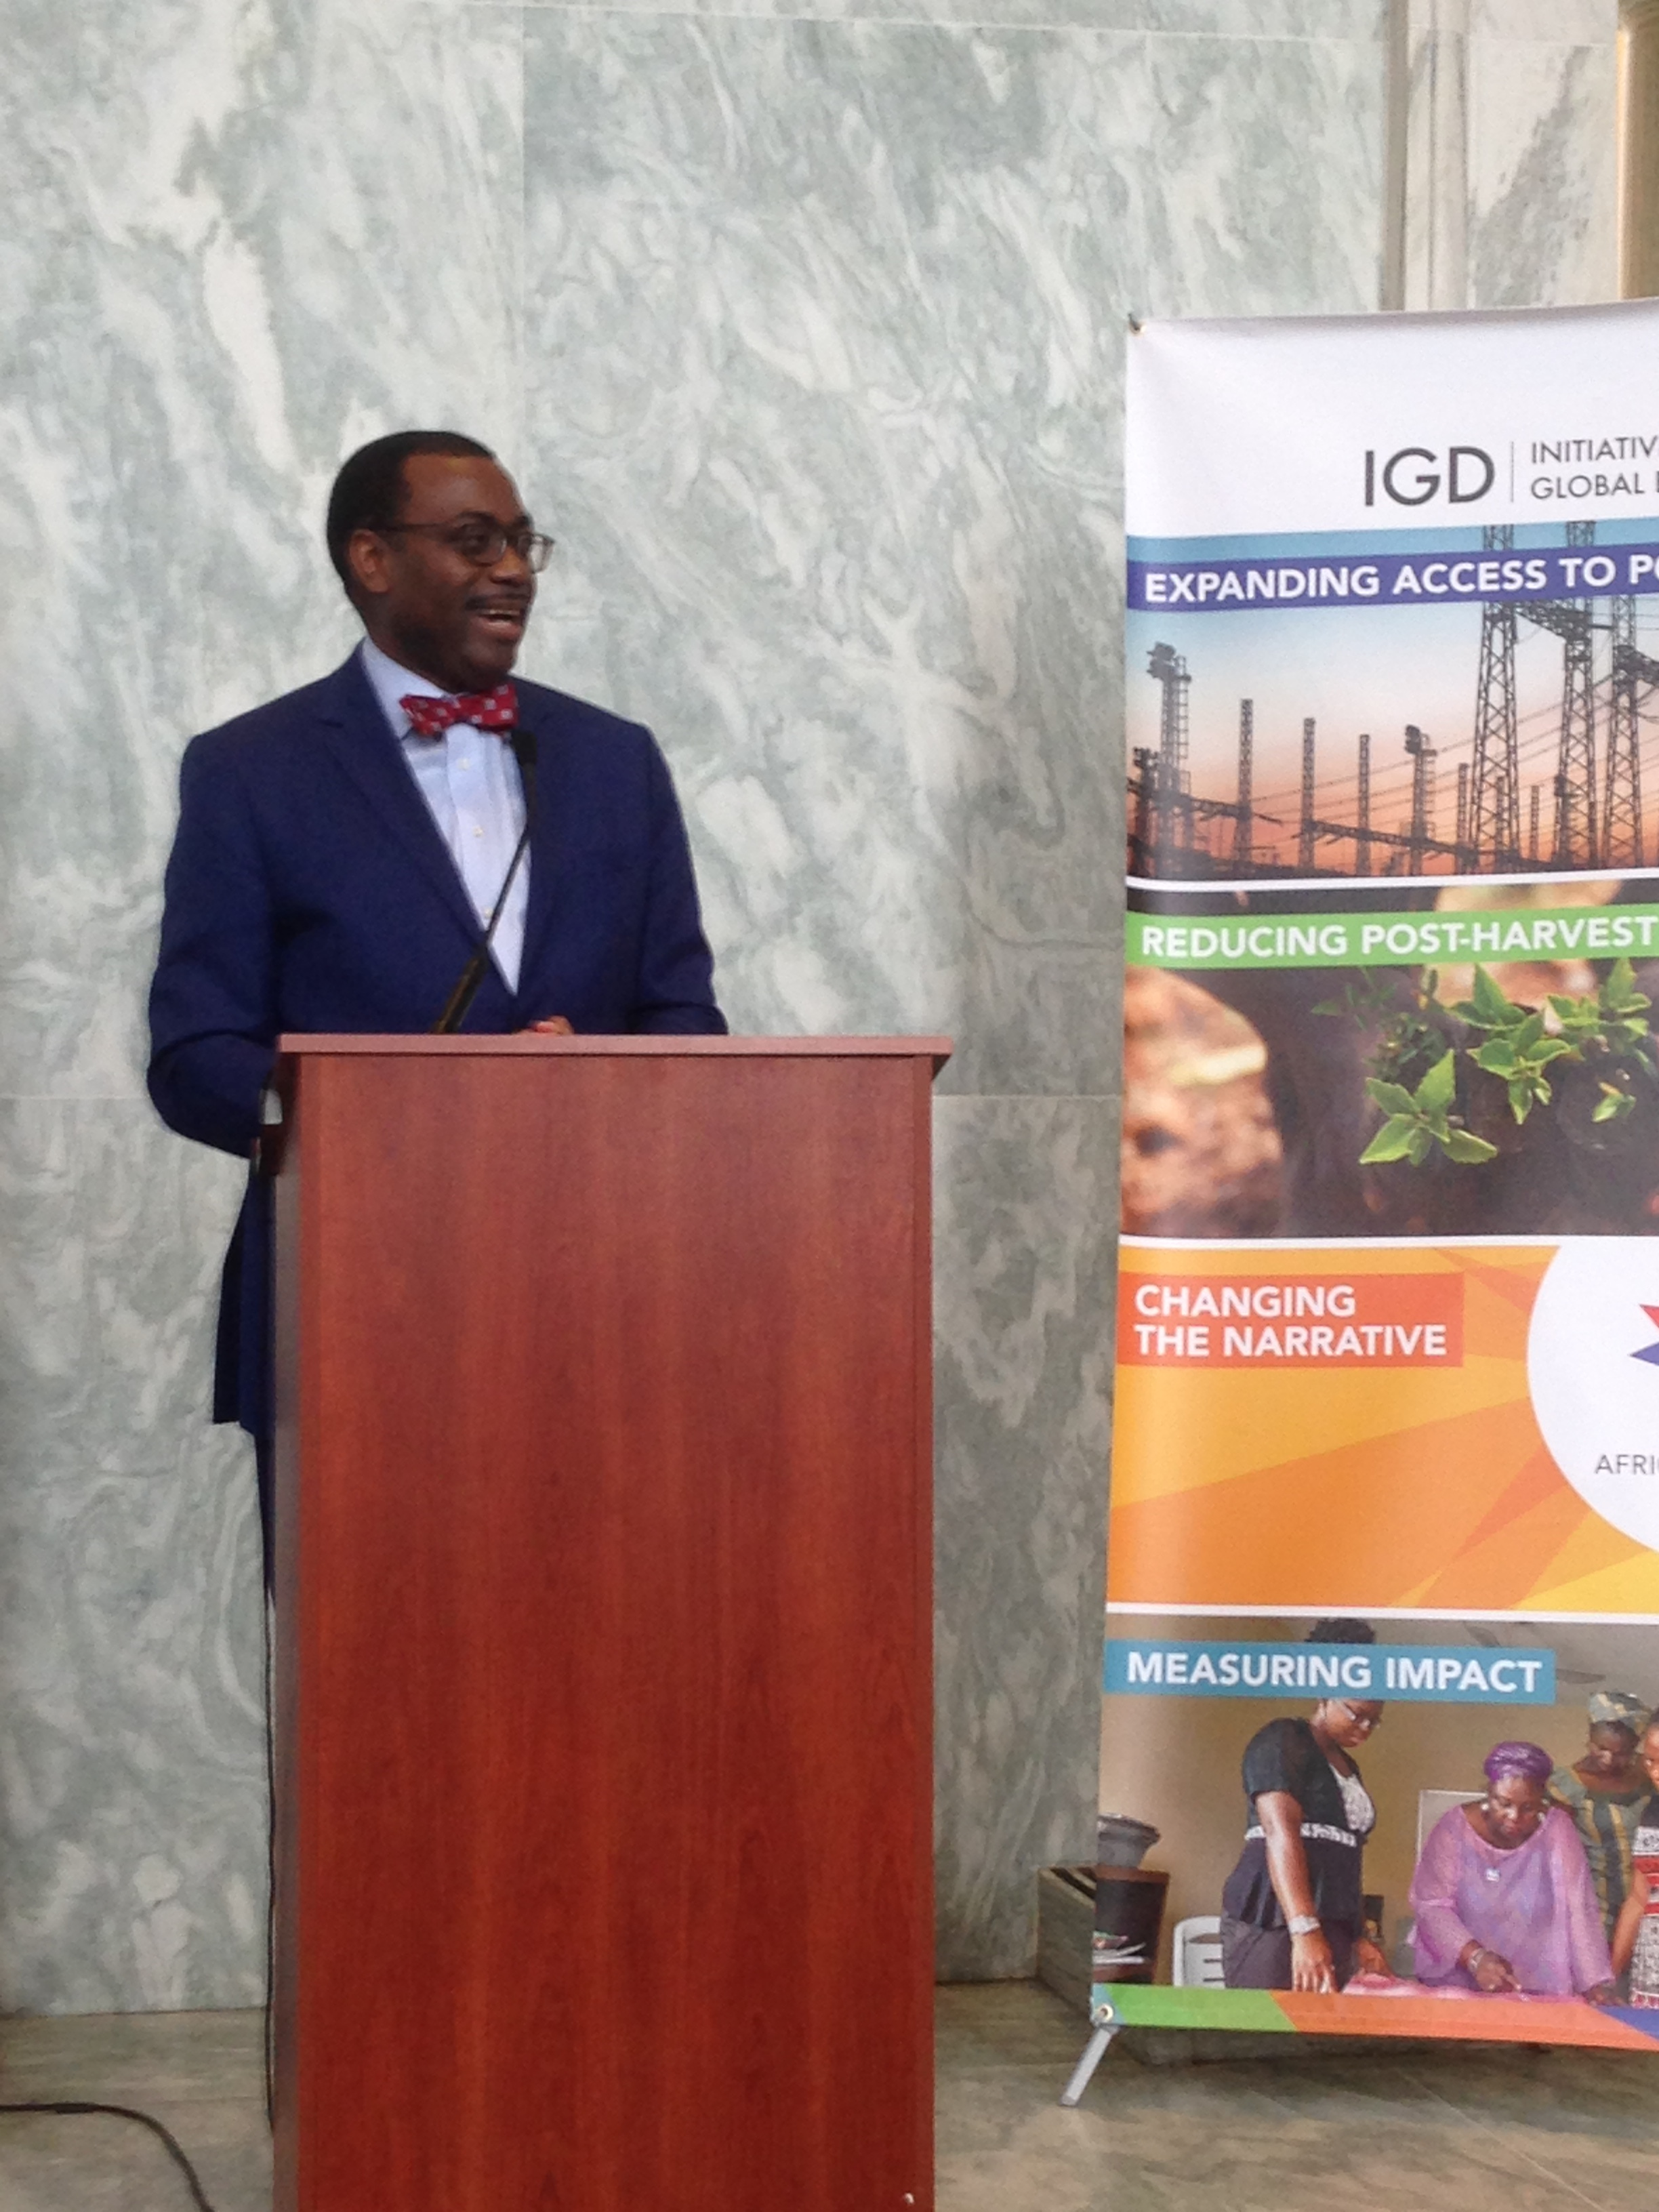 The Hon. Akinwumi Adesina speaking at the networking reception 04/20/17